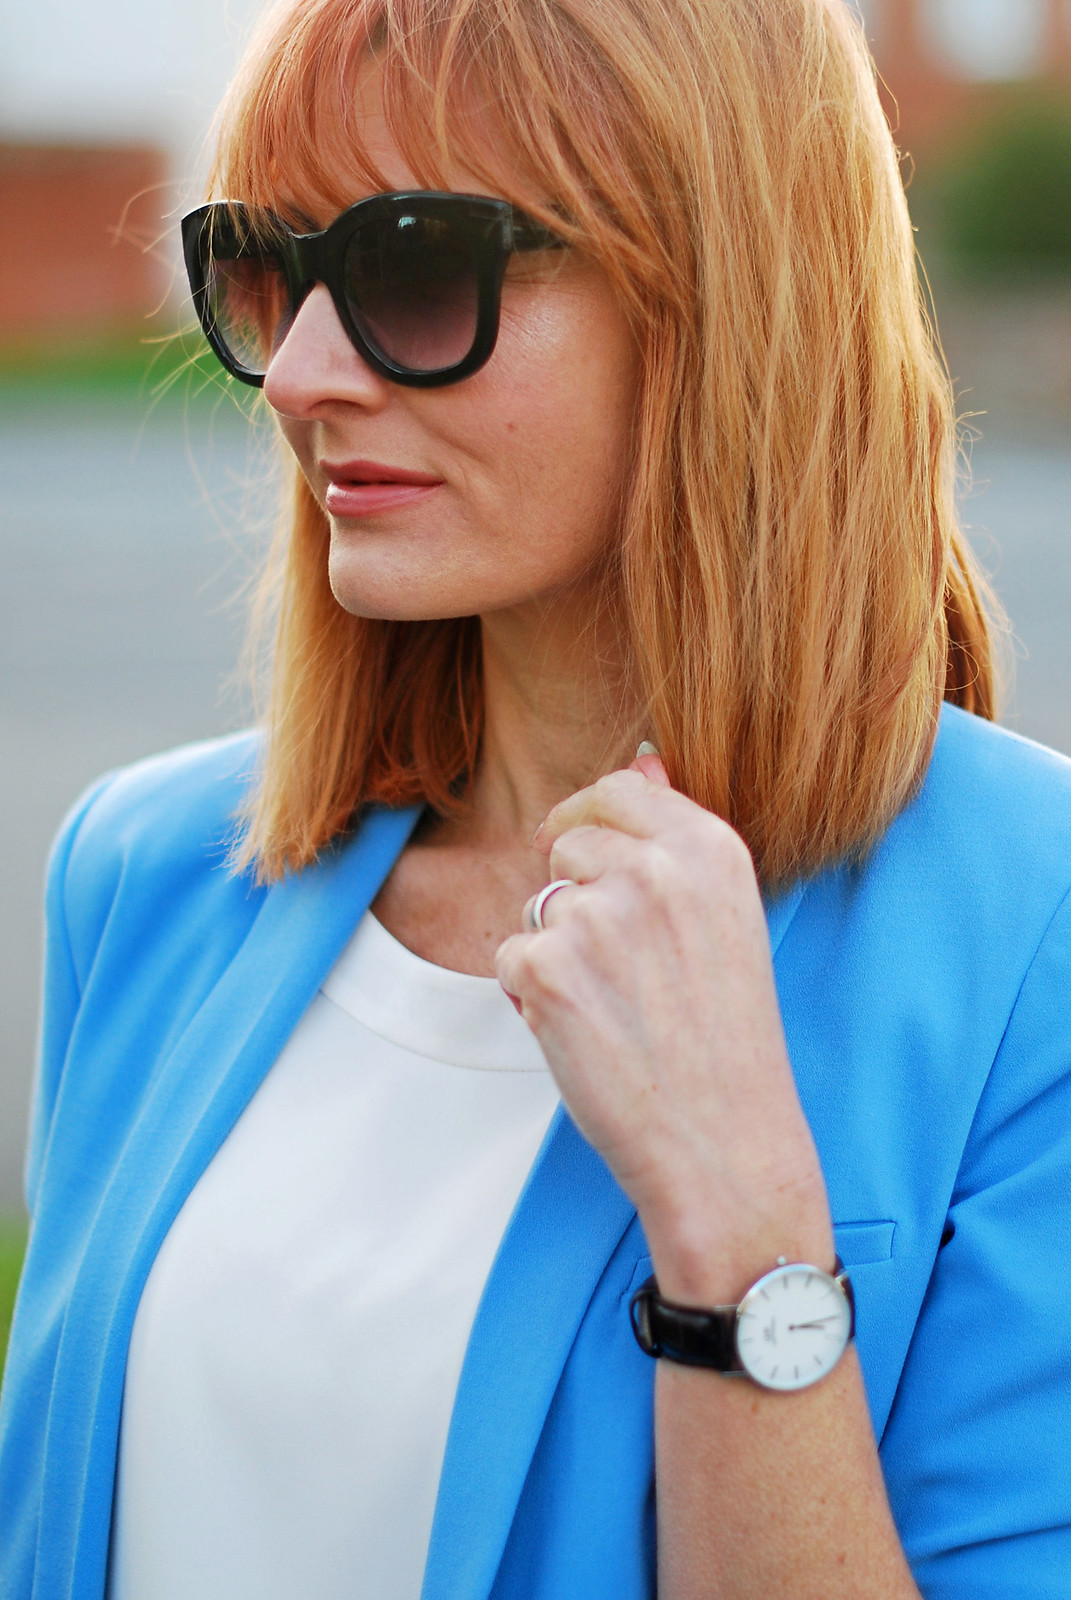 SS16 White chiffon top, blue blazer, black cat eye sunglasses, Daniel Wellington watch | Not Dressed As Lamb